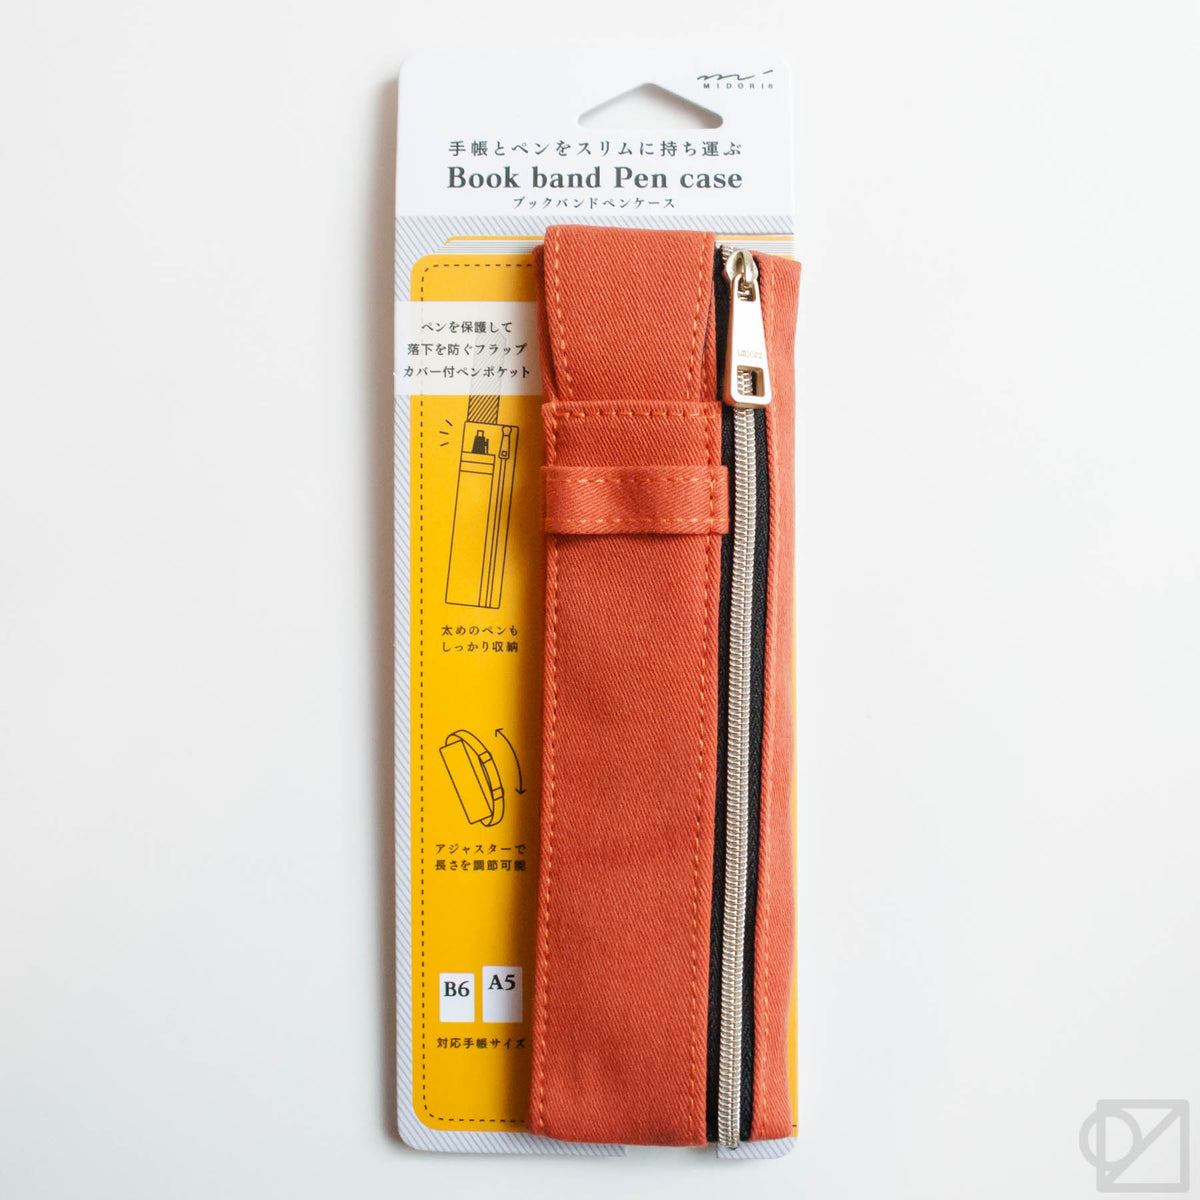 Bookband Pen Case